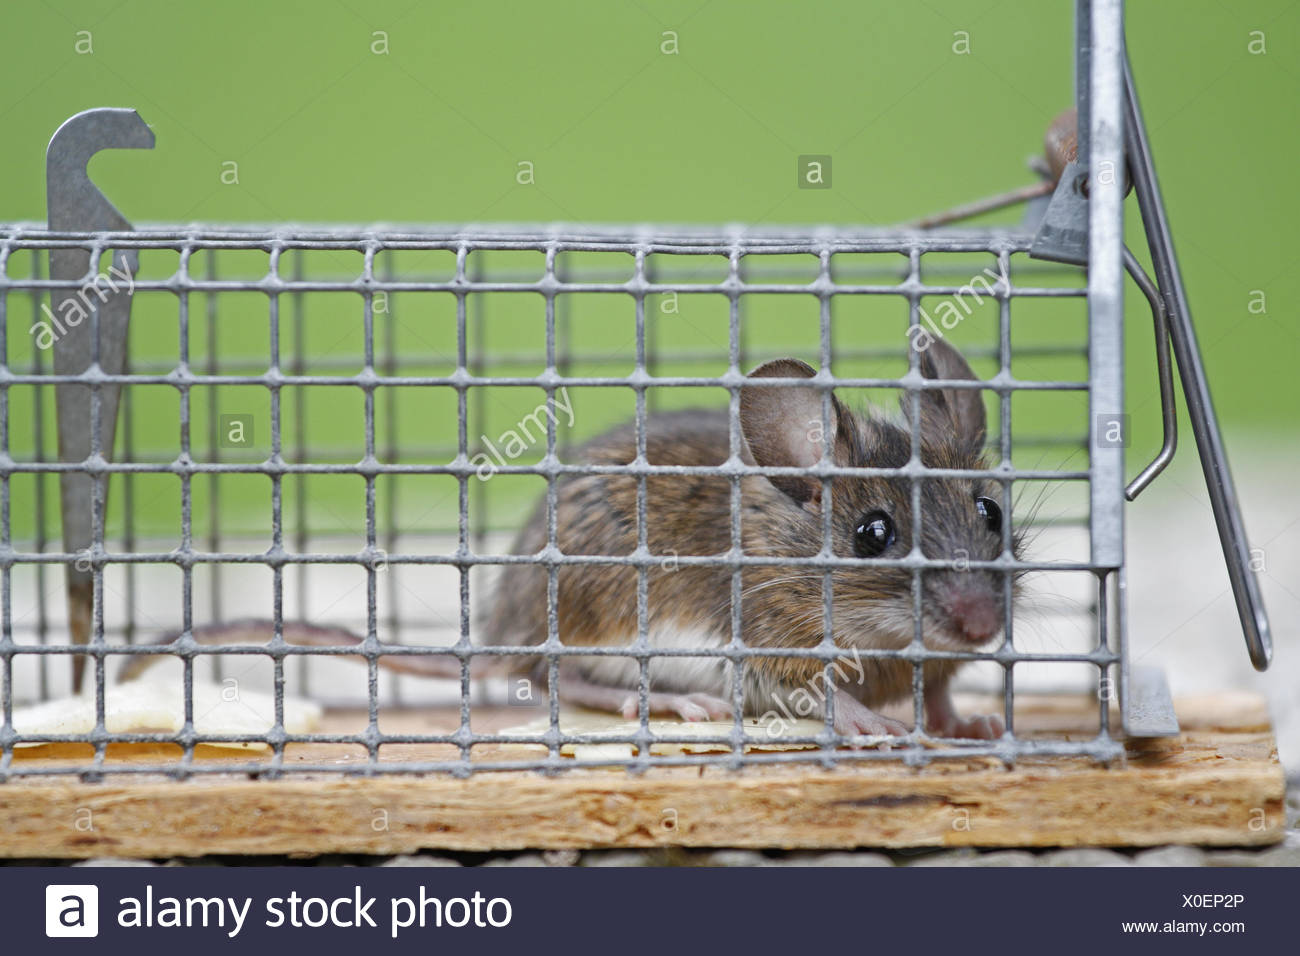 mouse in a life event - Stock Image